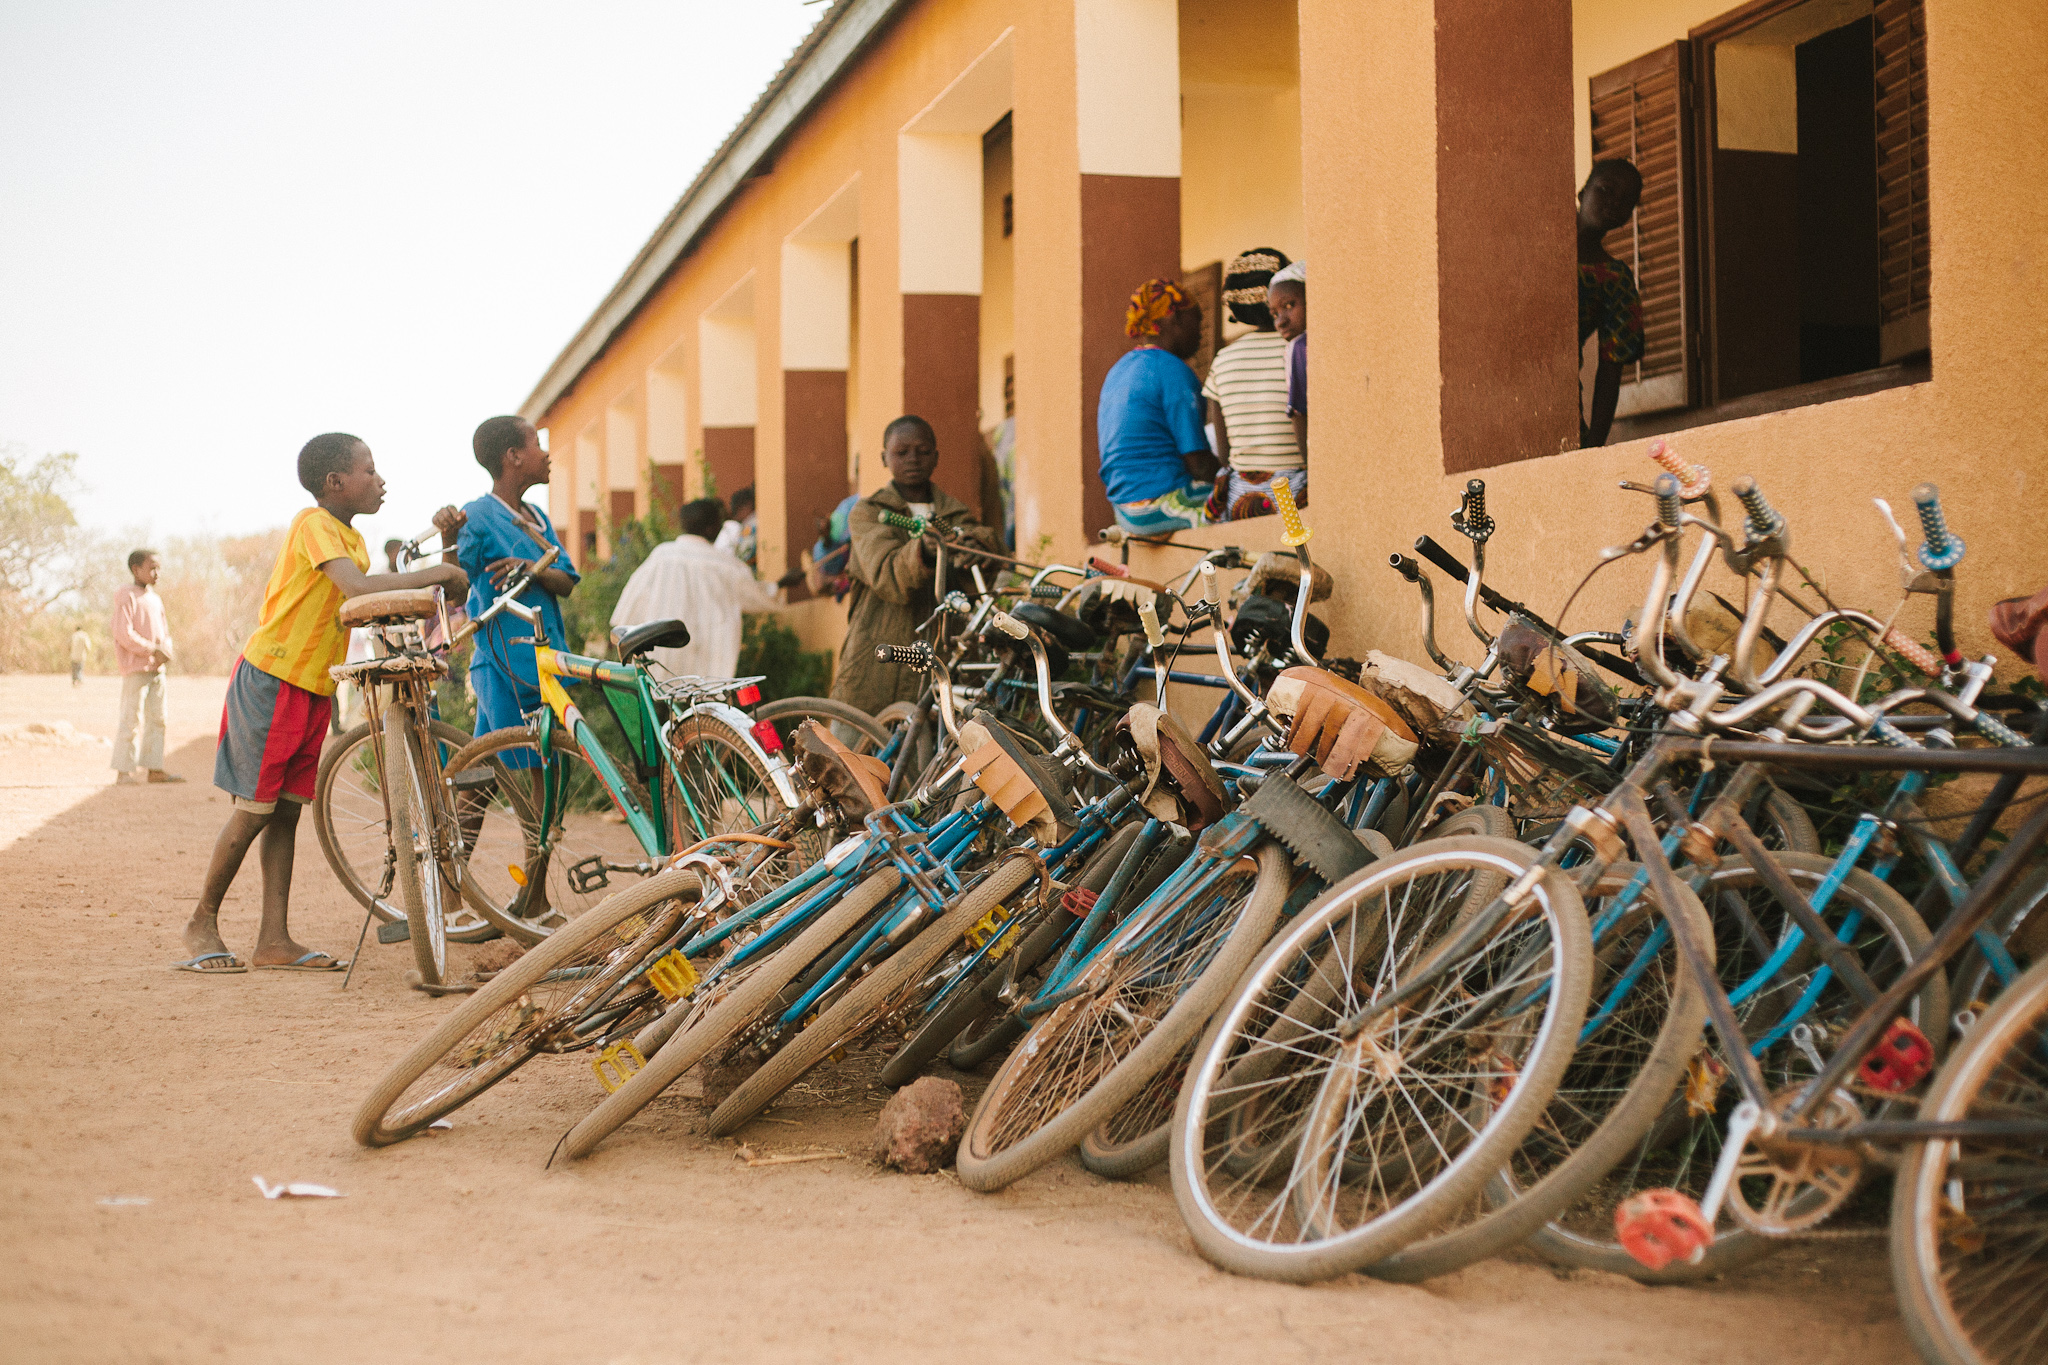 Mali Rising stays in active contact with the communities in which it has helped build schools, and tracks yearly enrollments. Schools constructed in one locale often serve neighboring villages as well, as evidenced by the stack of bikes outside Tamala's middle school, built in 2007.